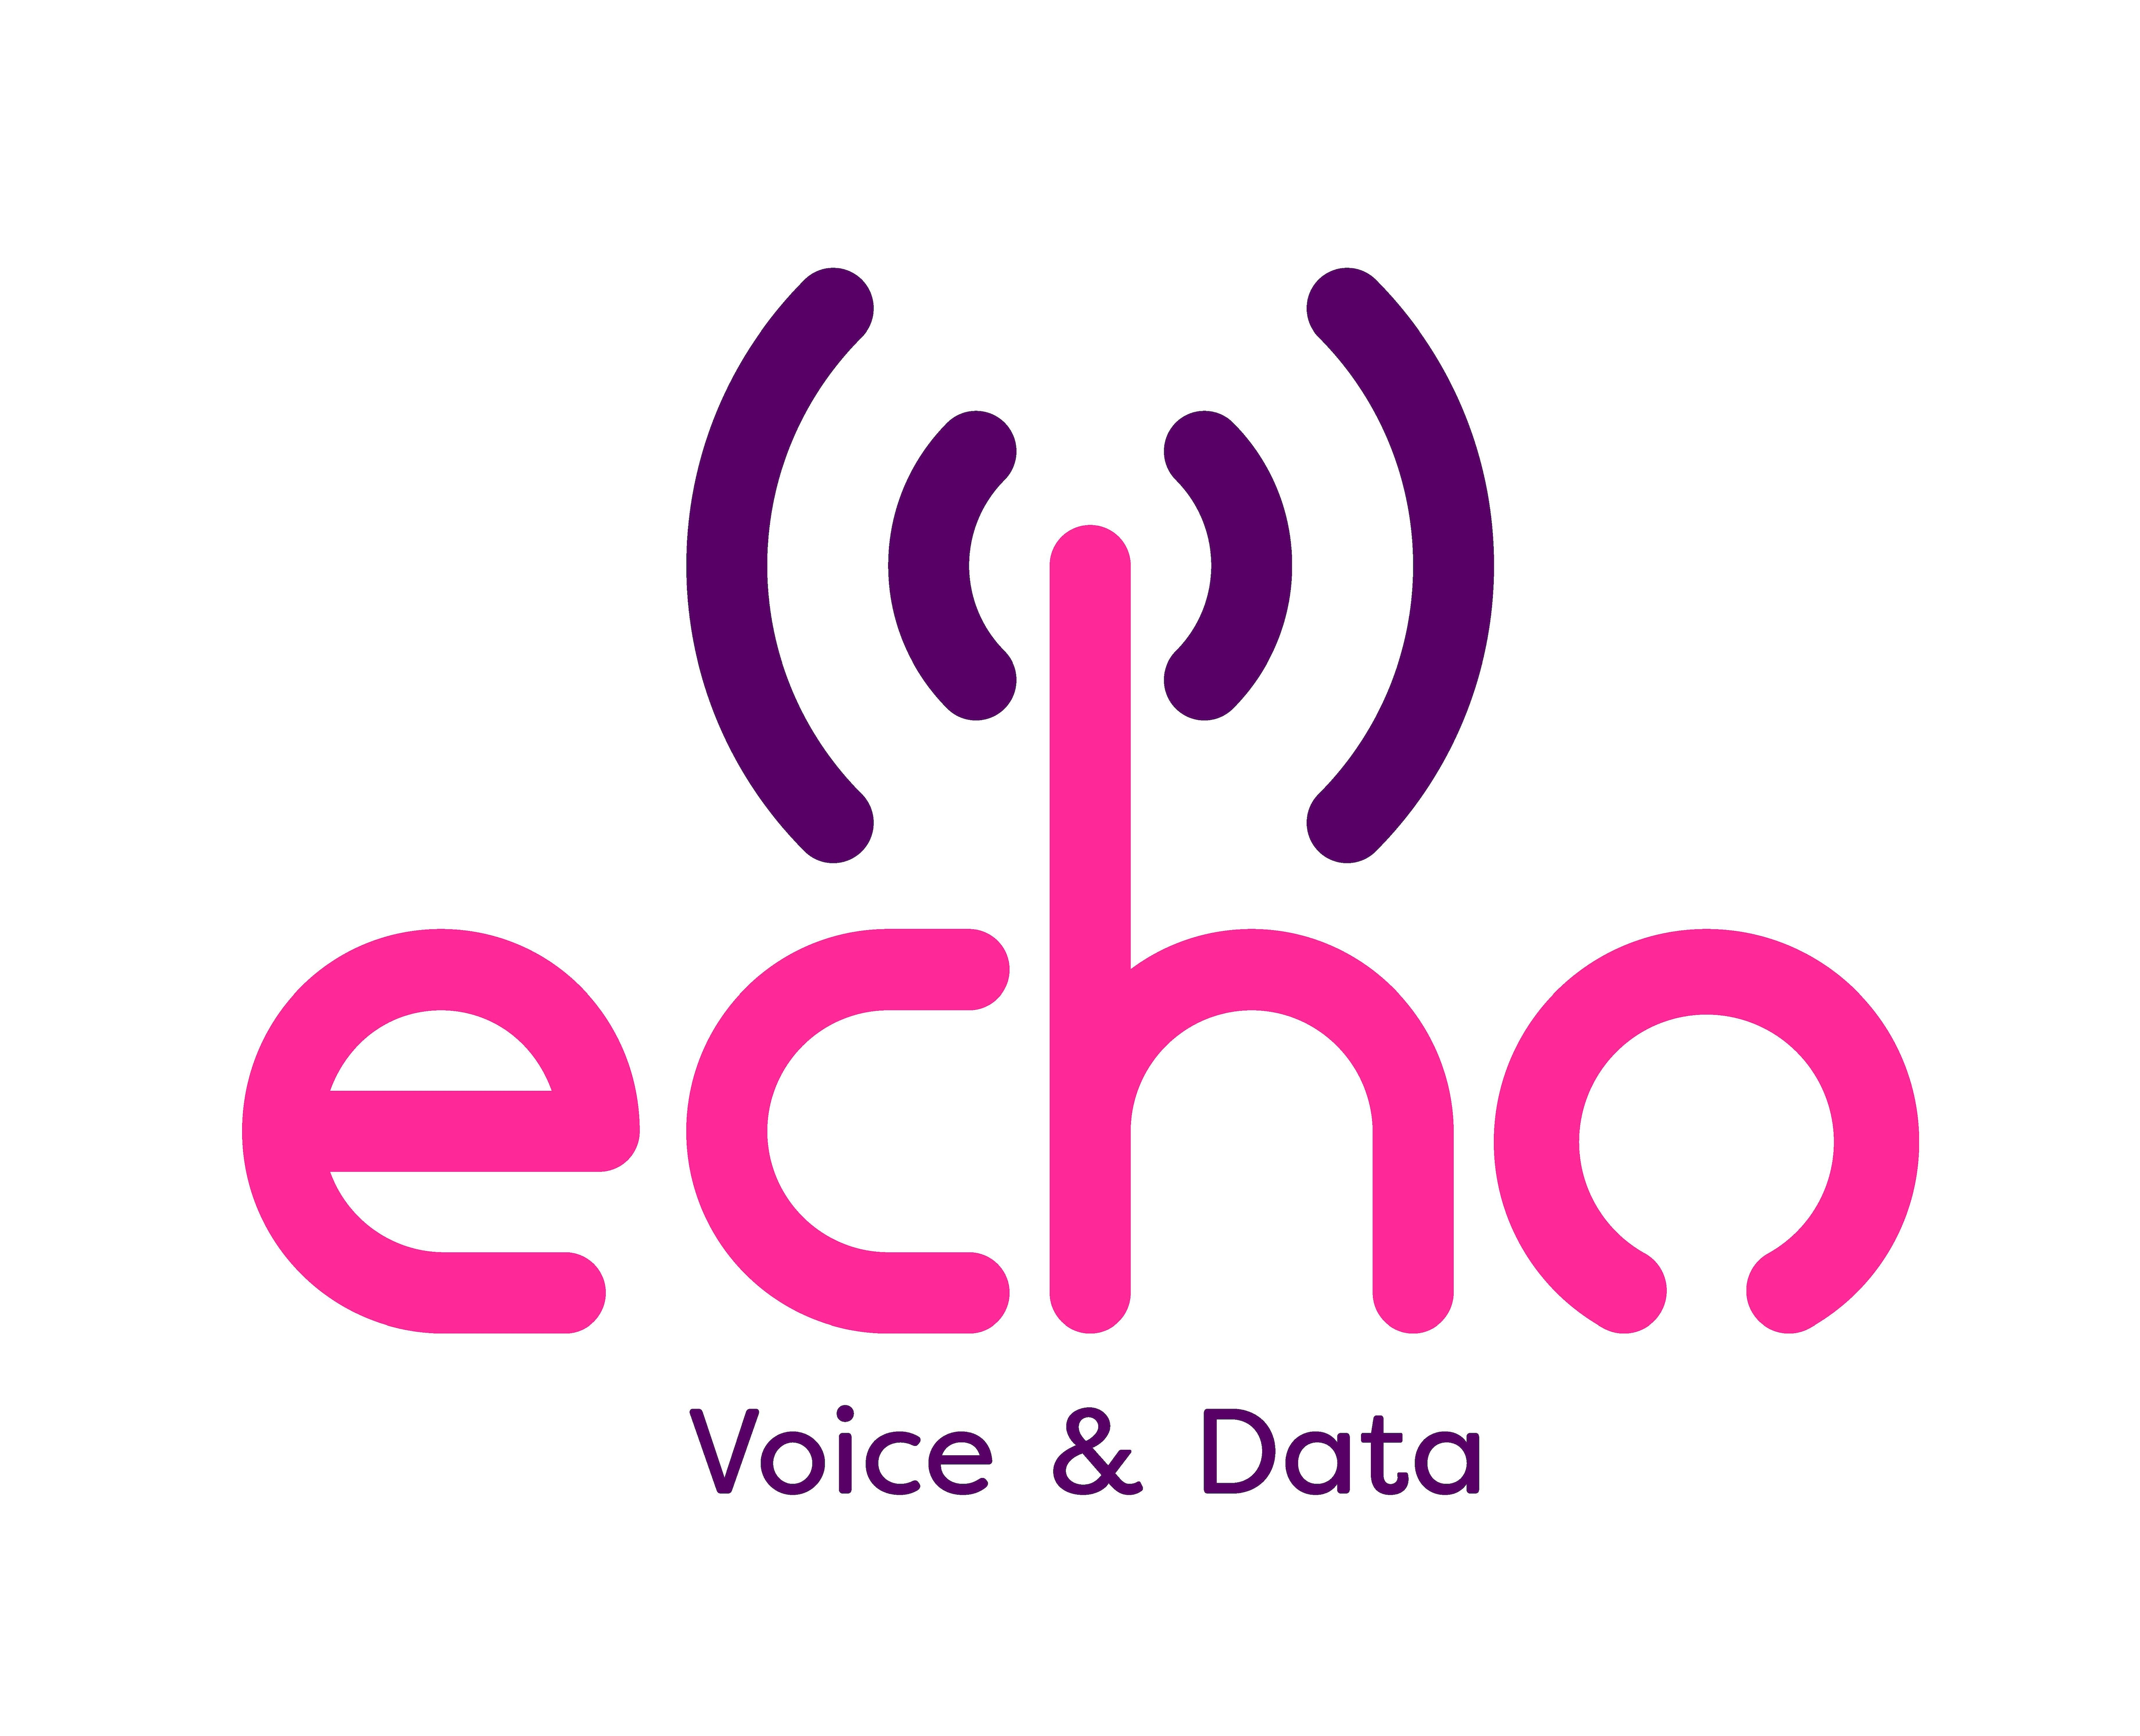 Echo Voice Echo Voice And Data Telstra Partner On 3 53 Smith St